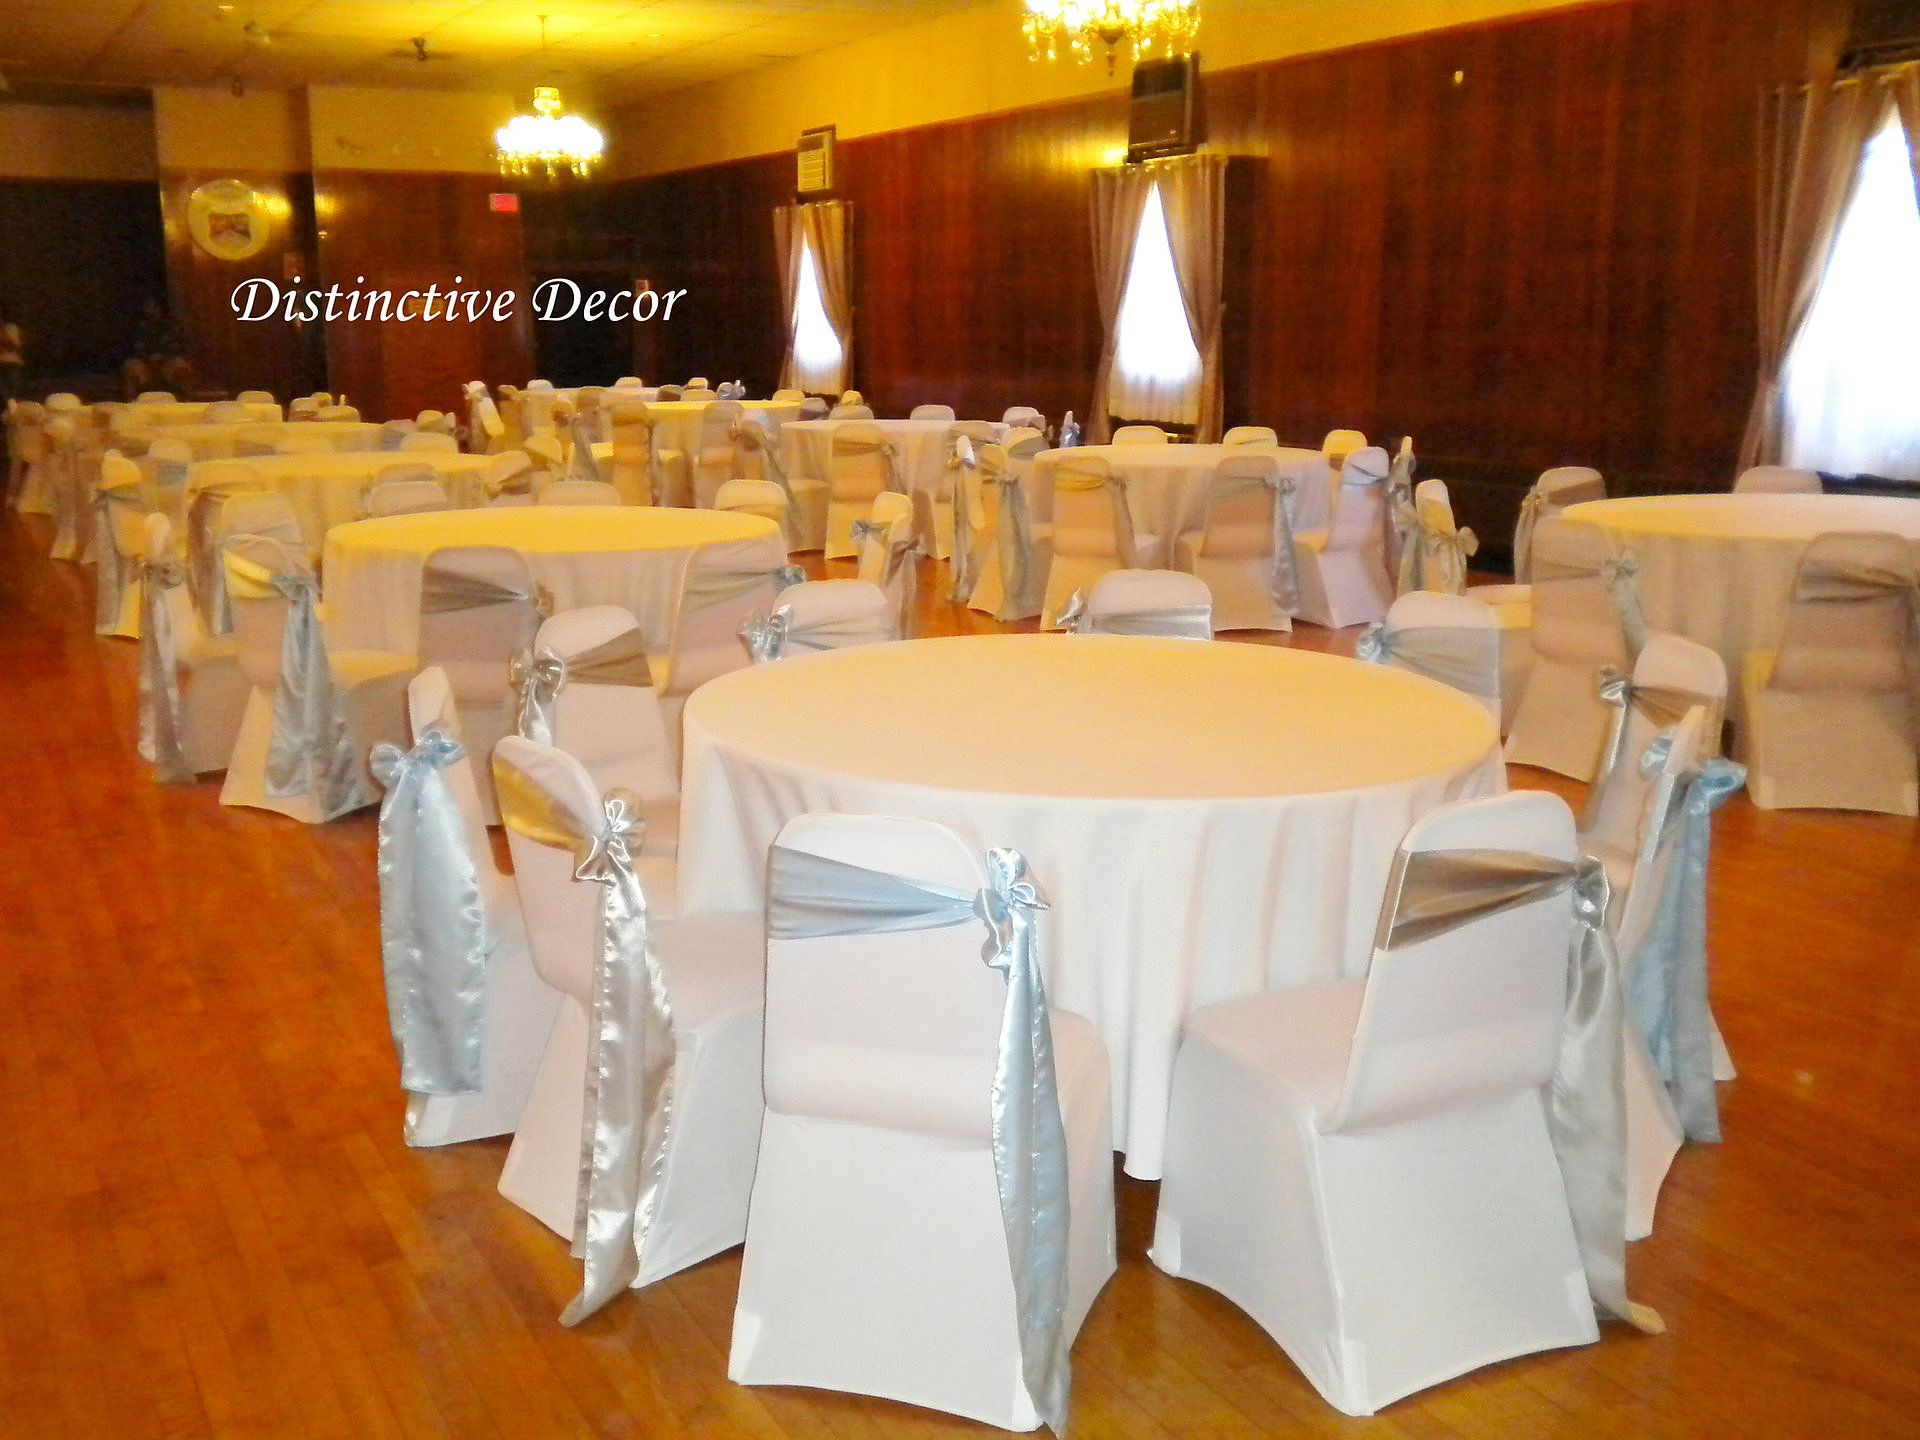 Distinctive Decor Rentals Celebrity Events Home Stretch Chair Covers